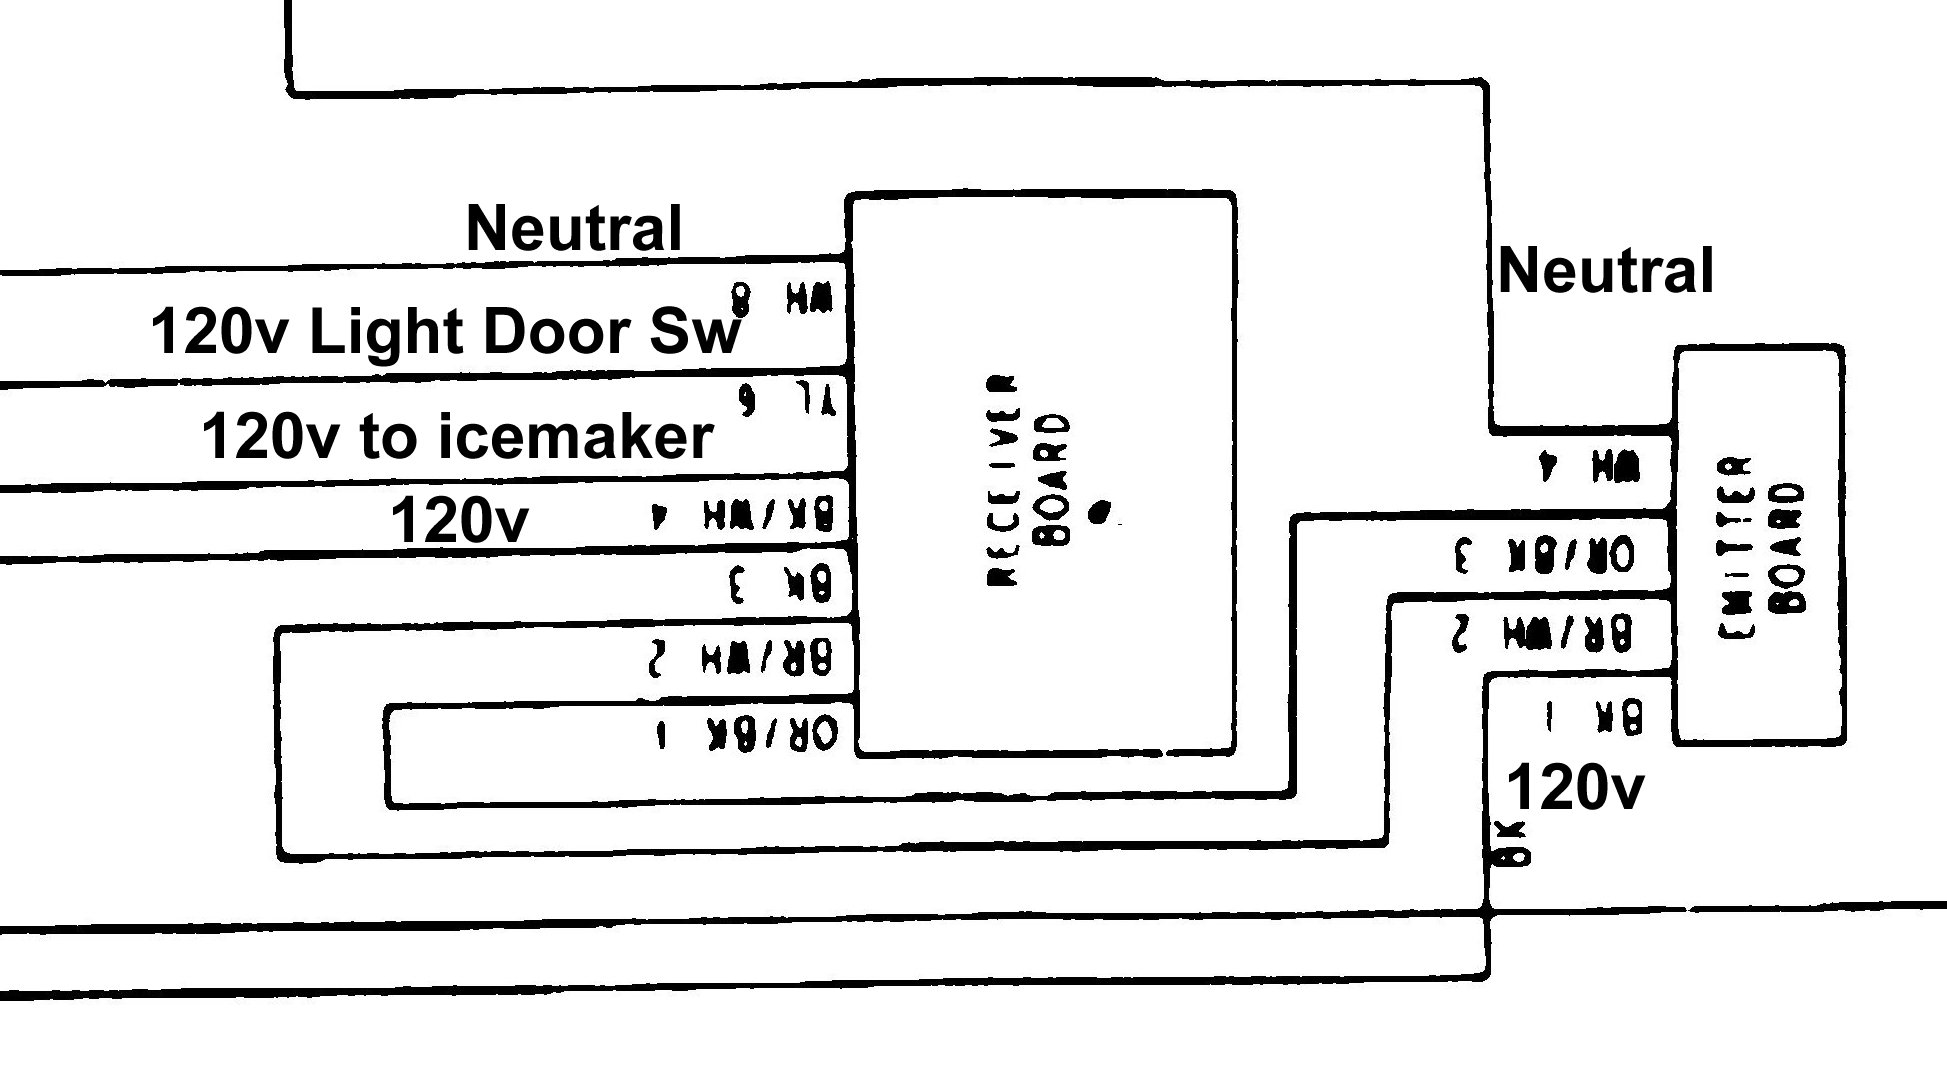 Ice maker circuit board wiring diagram